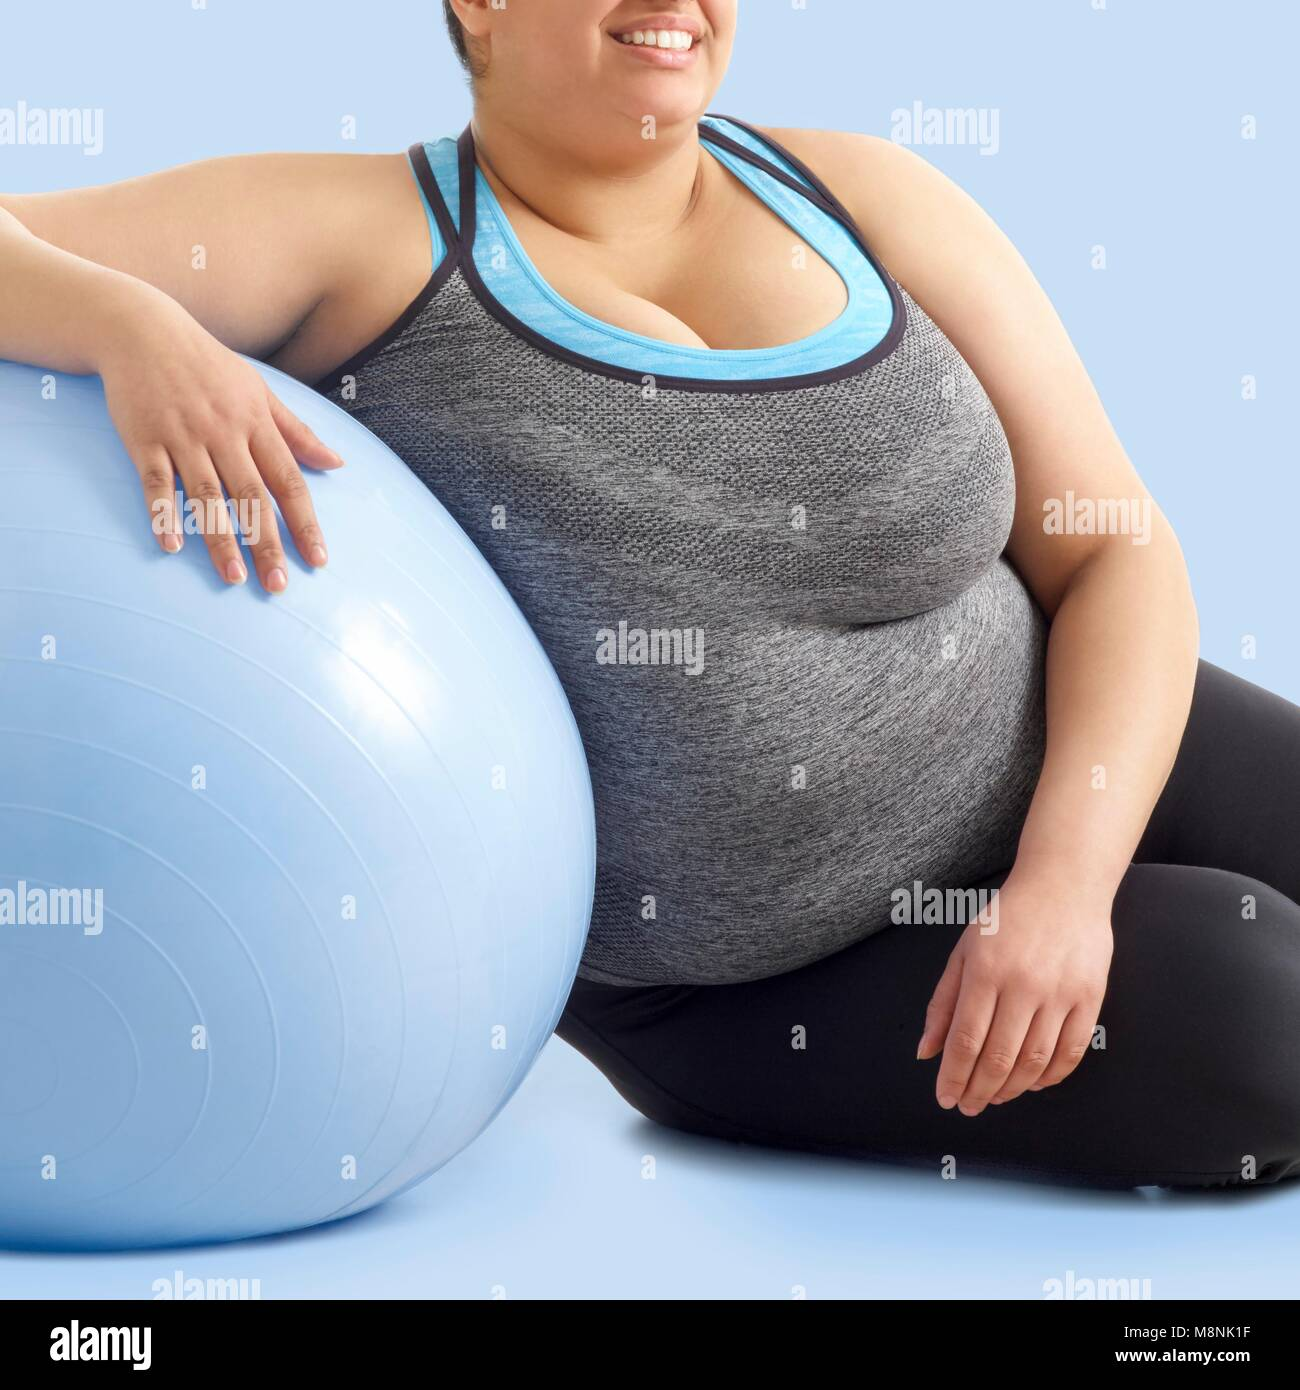 Overweight woman resting against exercise ball. - Stock Image